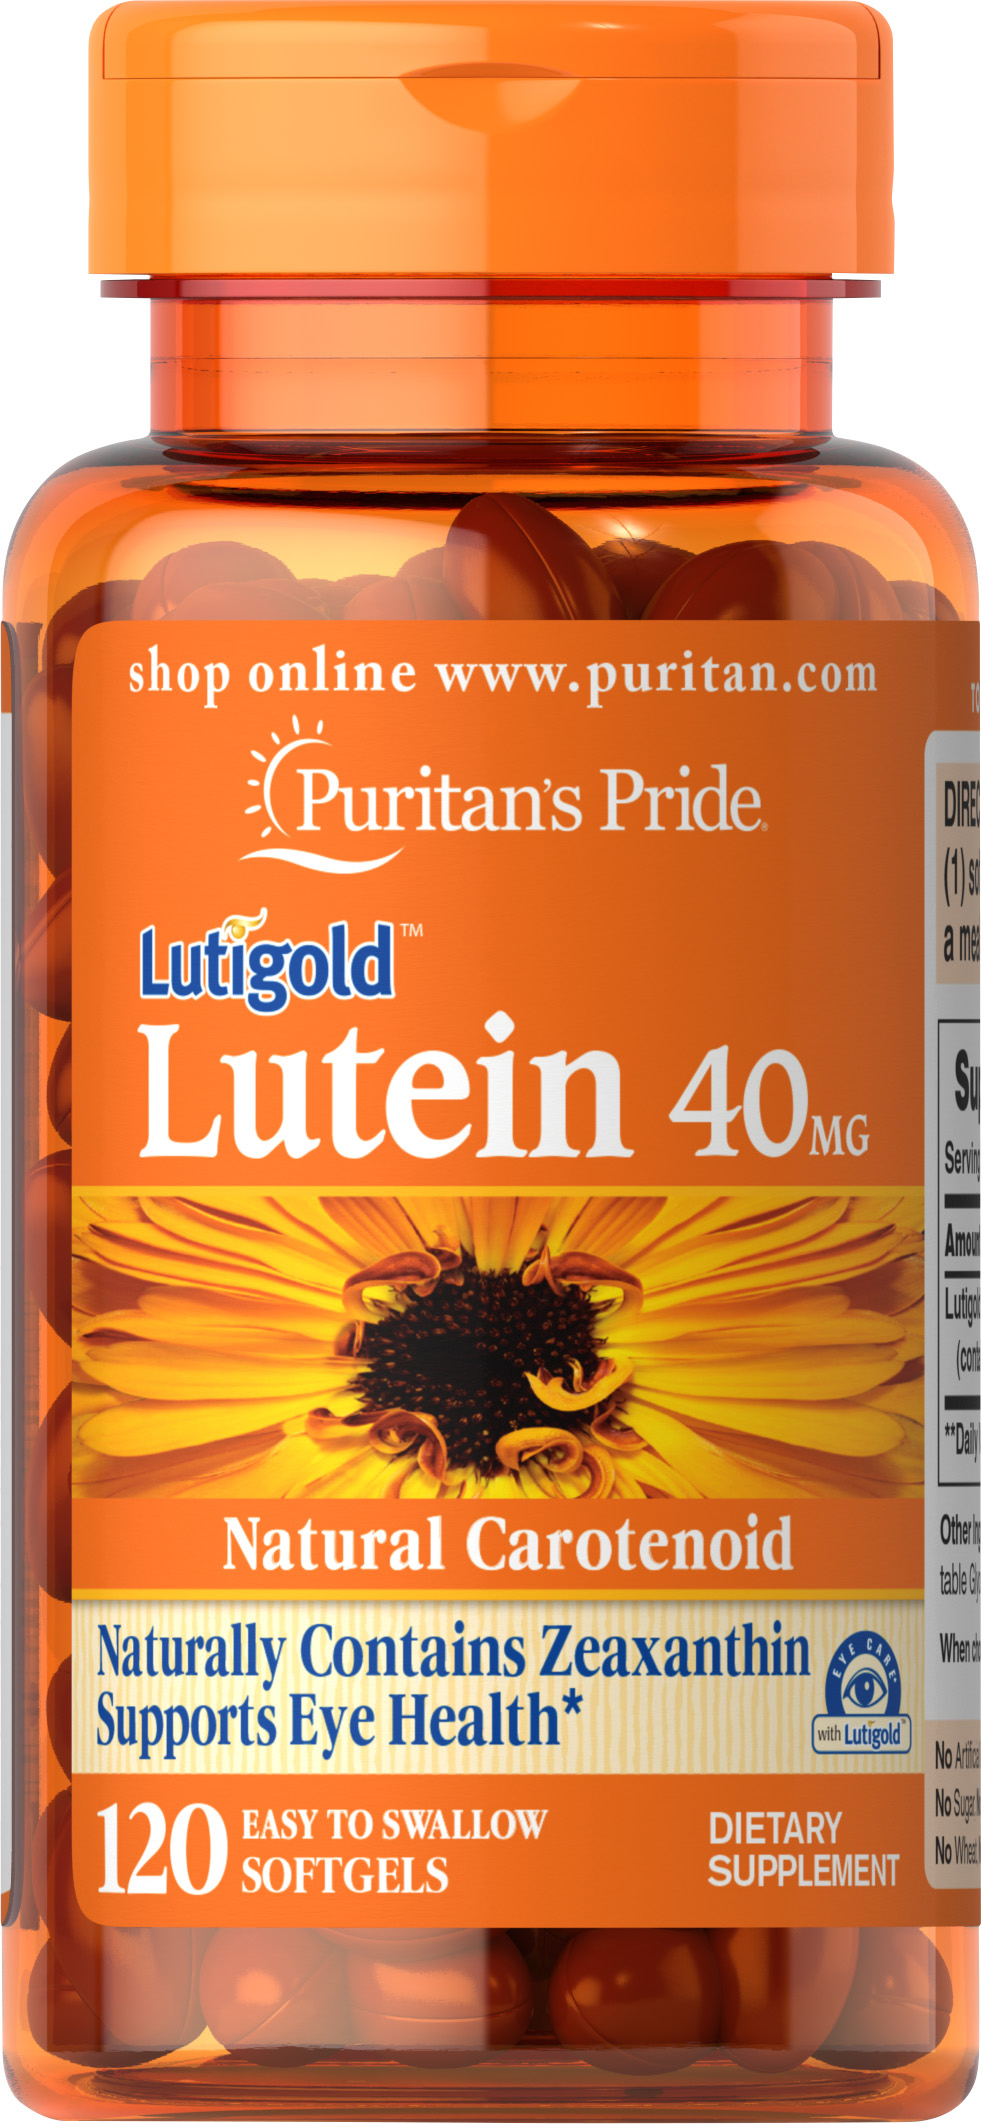 Puritan's Pride Lutein 40 mg with Zeaxanthin - 120 Softgels